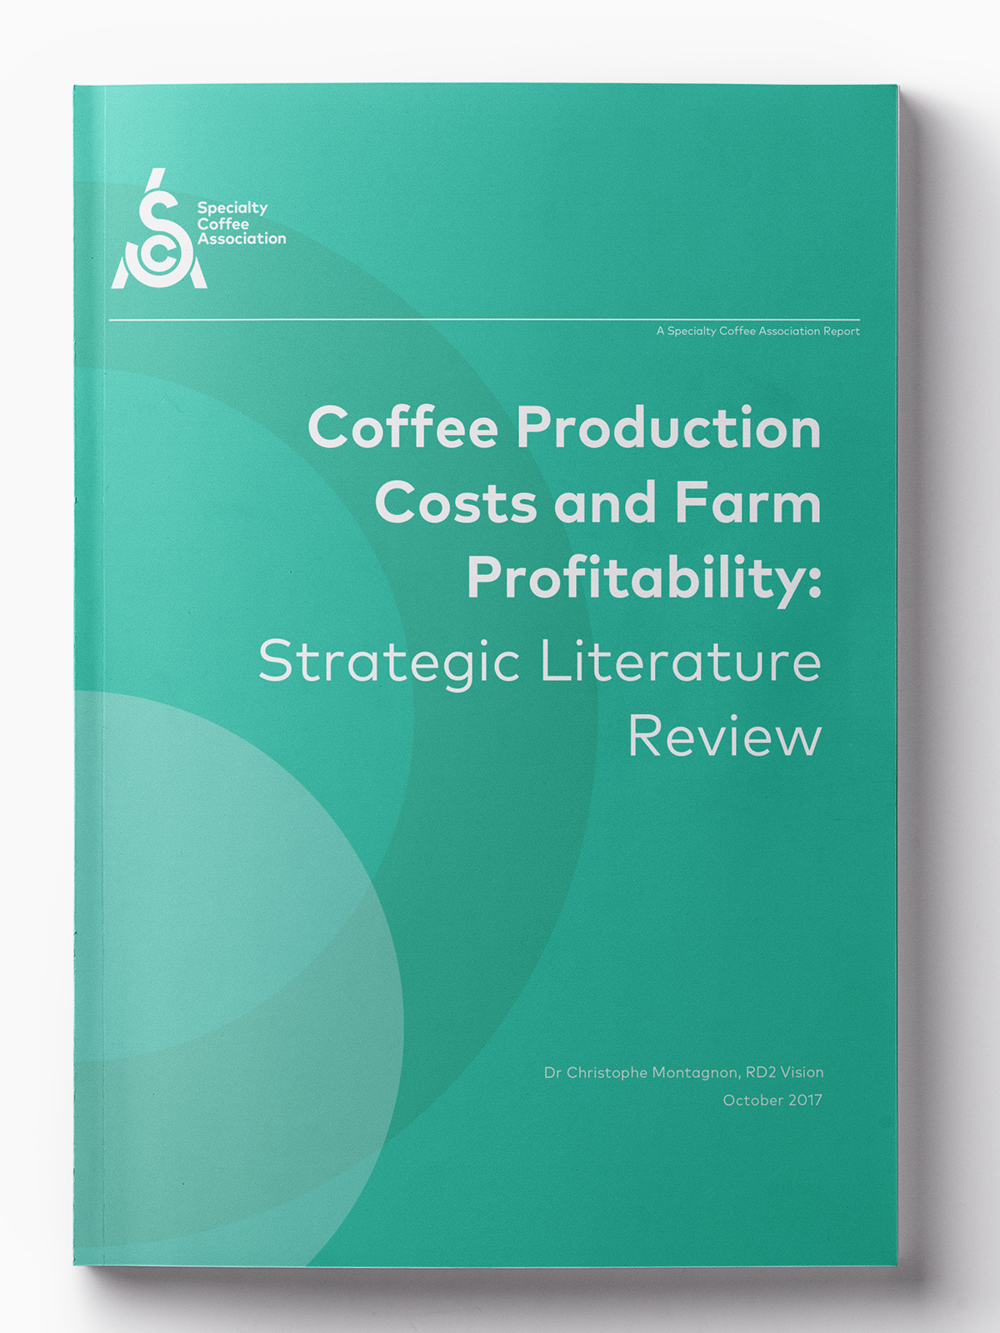 Coffee Production Costs and Farm Profitability: Strategic Literature Review  This review explores the costs of production for coffee farms and discovers that yield is not necessarily correlated with farm profitability.   Download   Webinar & Article on SCA News